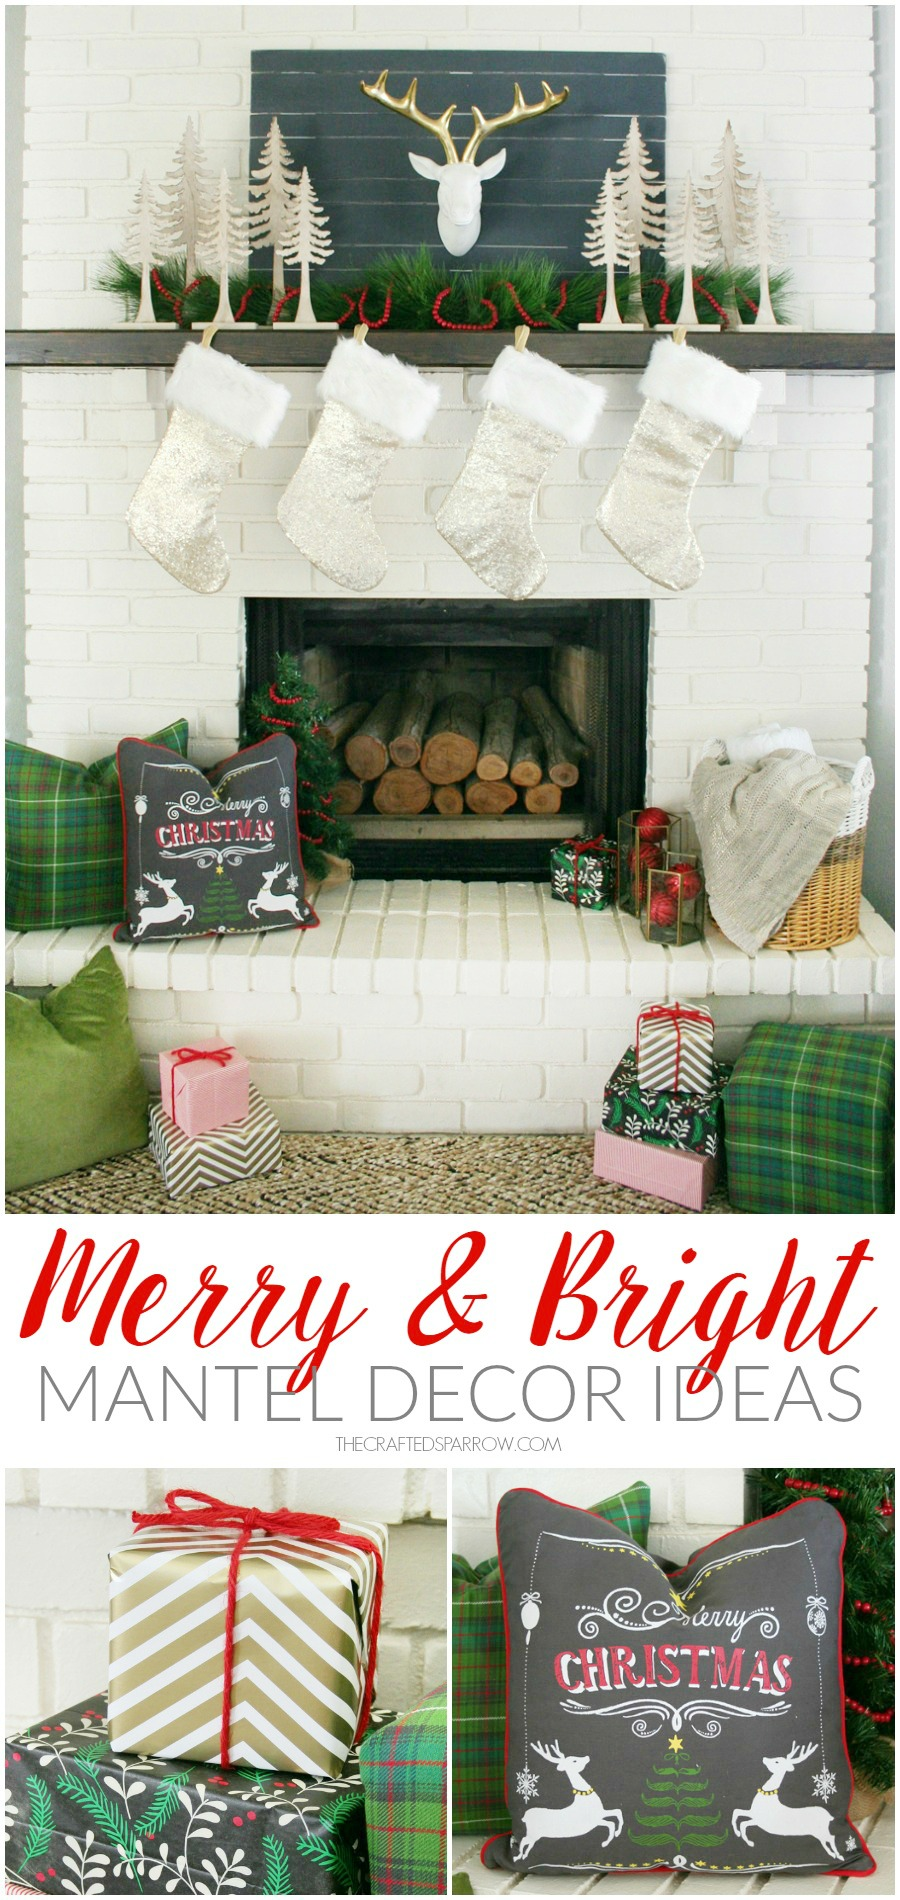 Merry & Bright Holiday Mantel